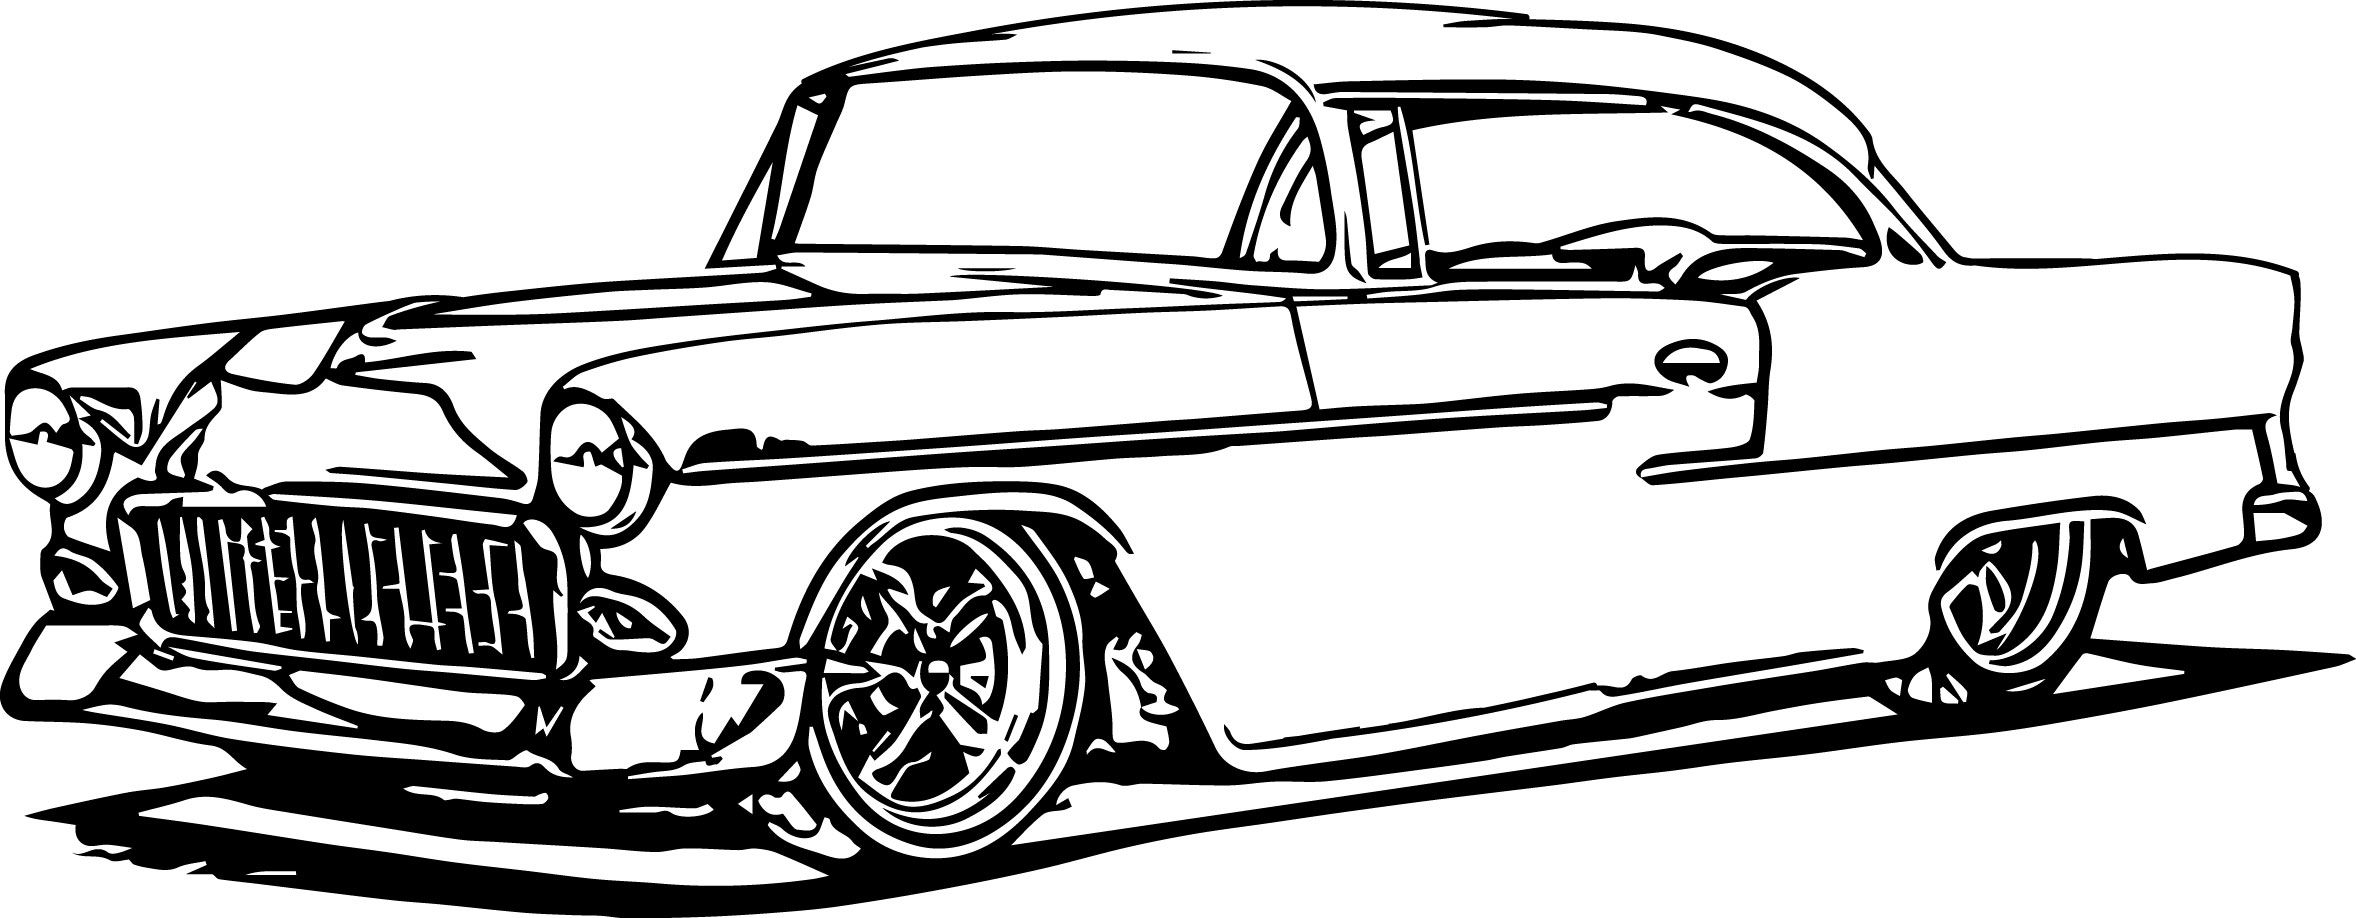 Antique Car Coloring Pages Wecoloringpage Cars Coloring Pages Old School Cars Truck Coloring Pages